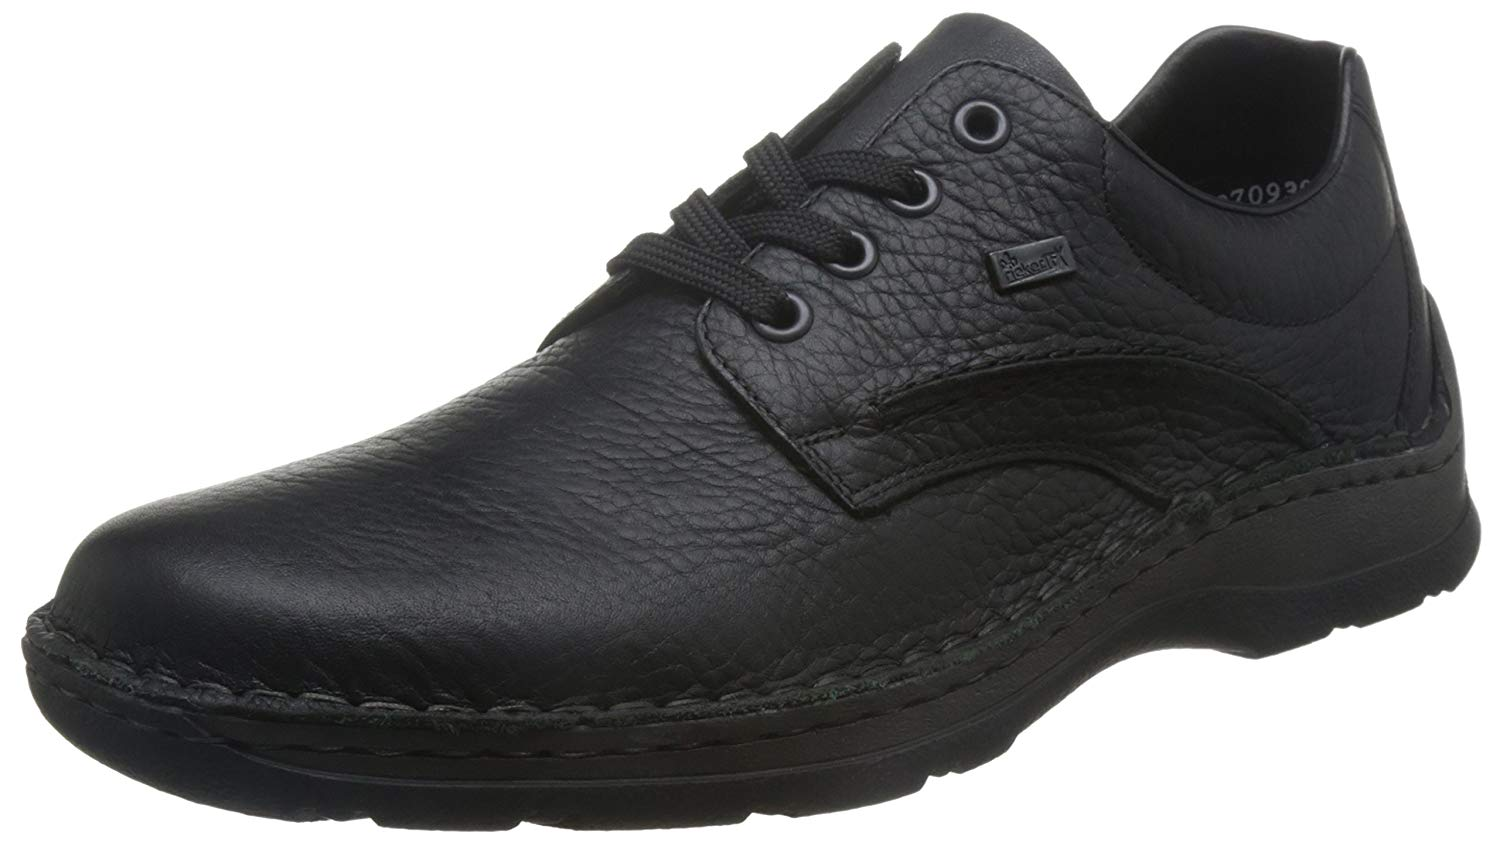 a5287185c6eee Get Quotations · Rieker Mens M.Low Shoes Black Extra Wide